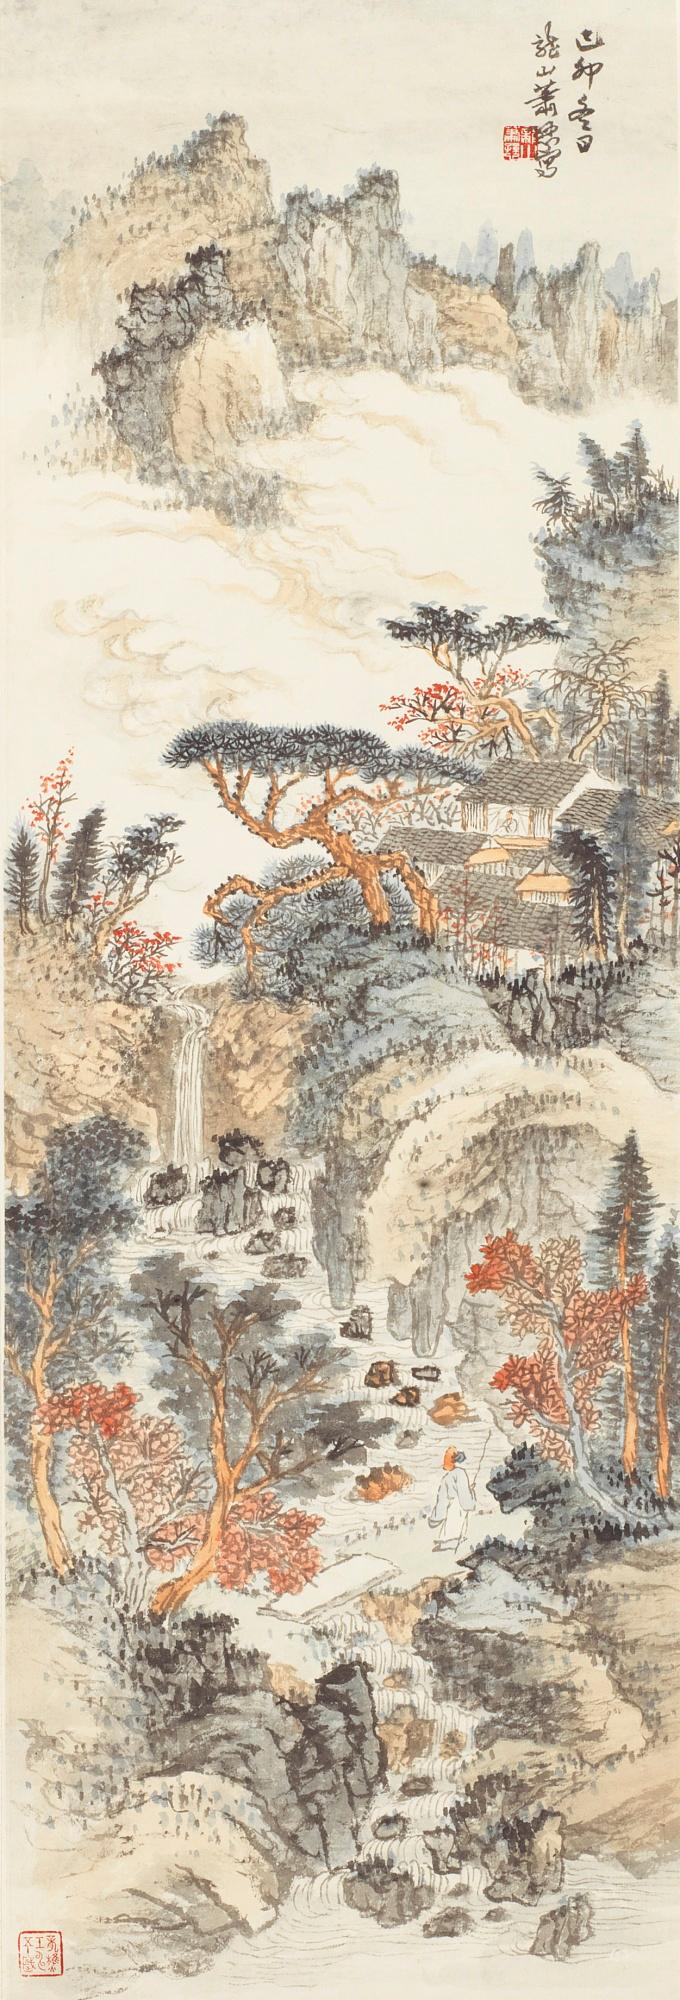 XIAO XUN 1883-1944 | RECLUSE IN A MISTY MOUNTAIN